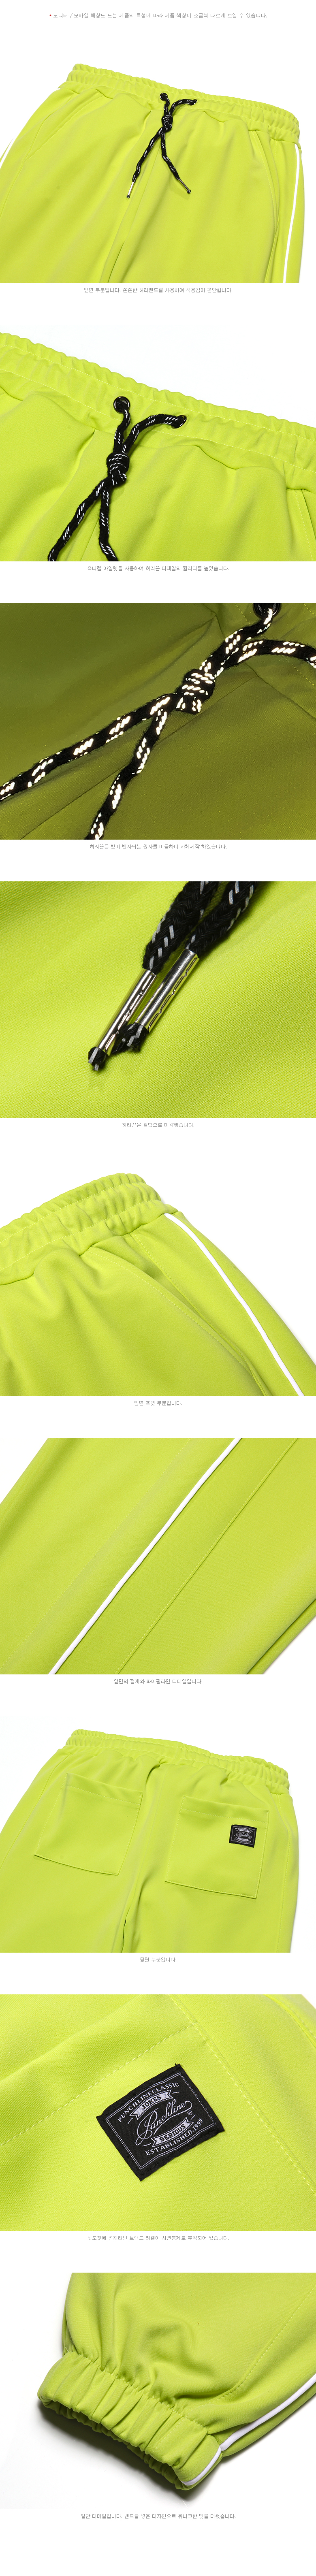 20190422_pl_walkingjogger_detail_lime_kang_02.jpg